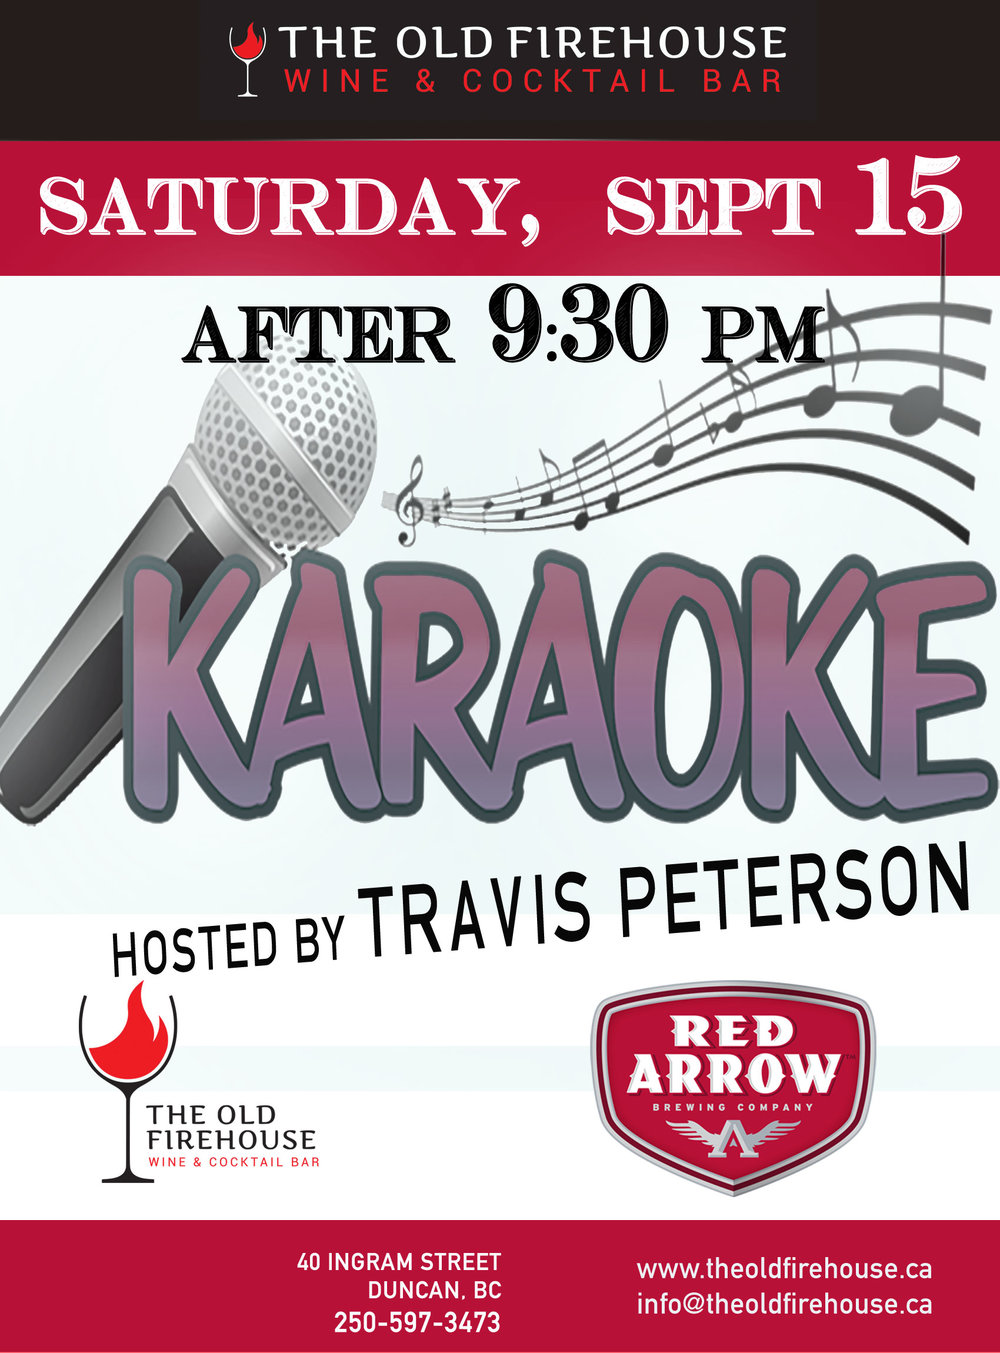 karaoke-poster-red-arrow-september-15.jpg